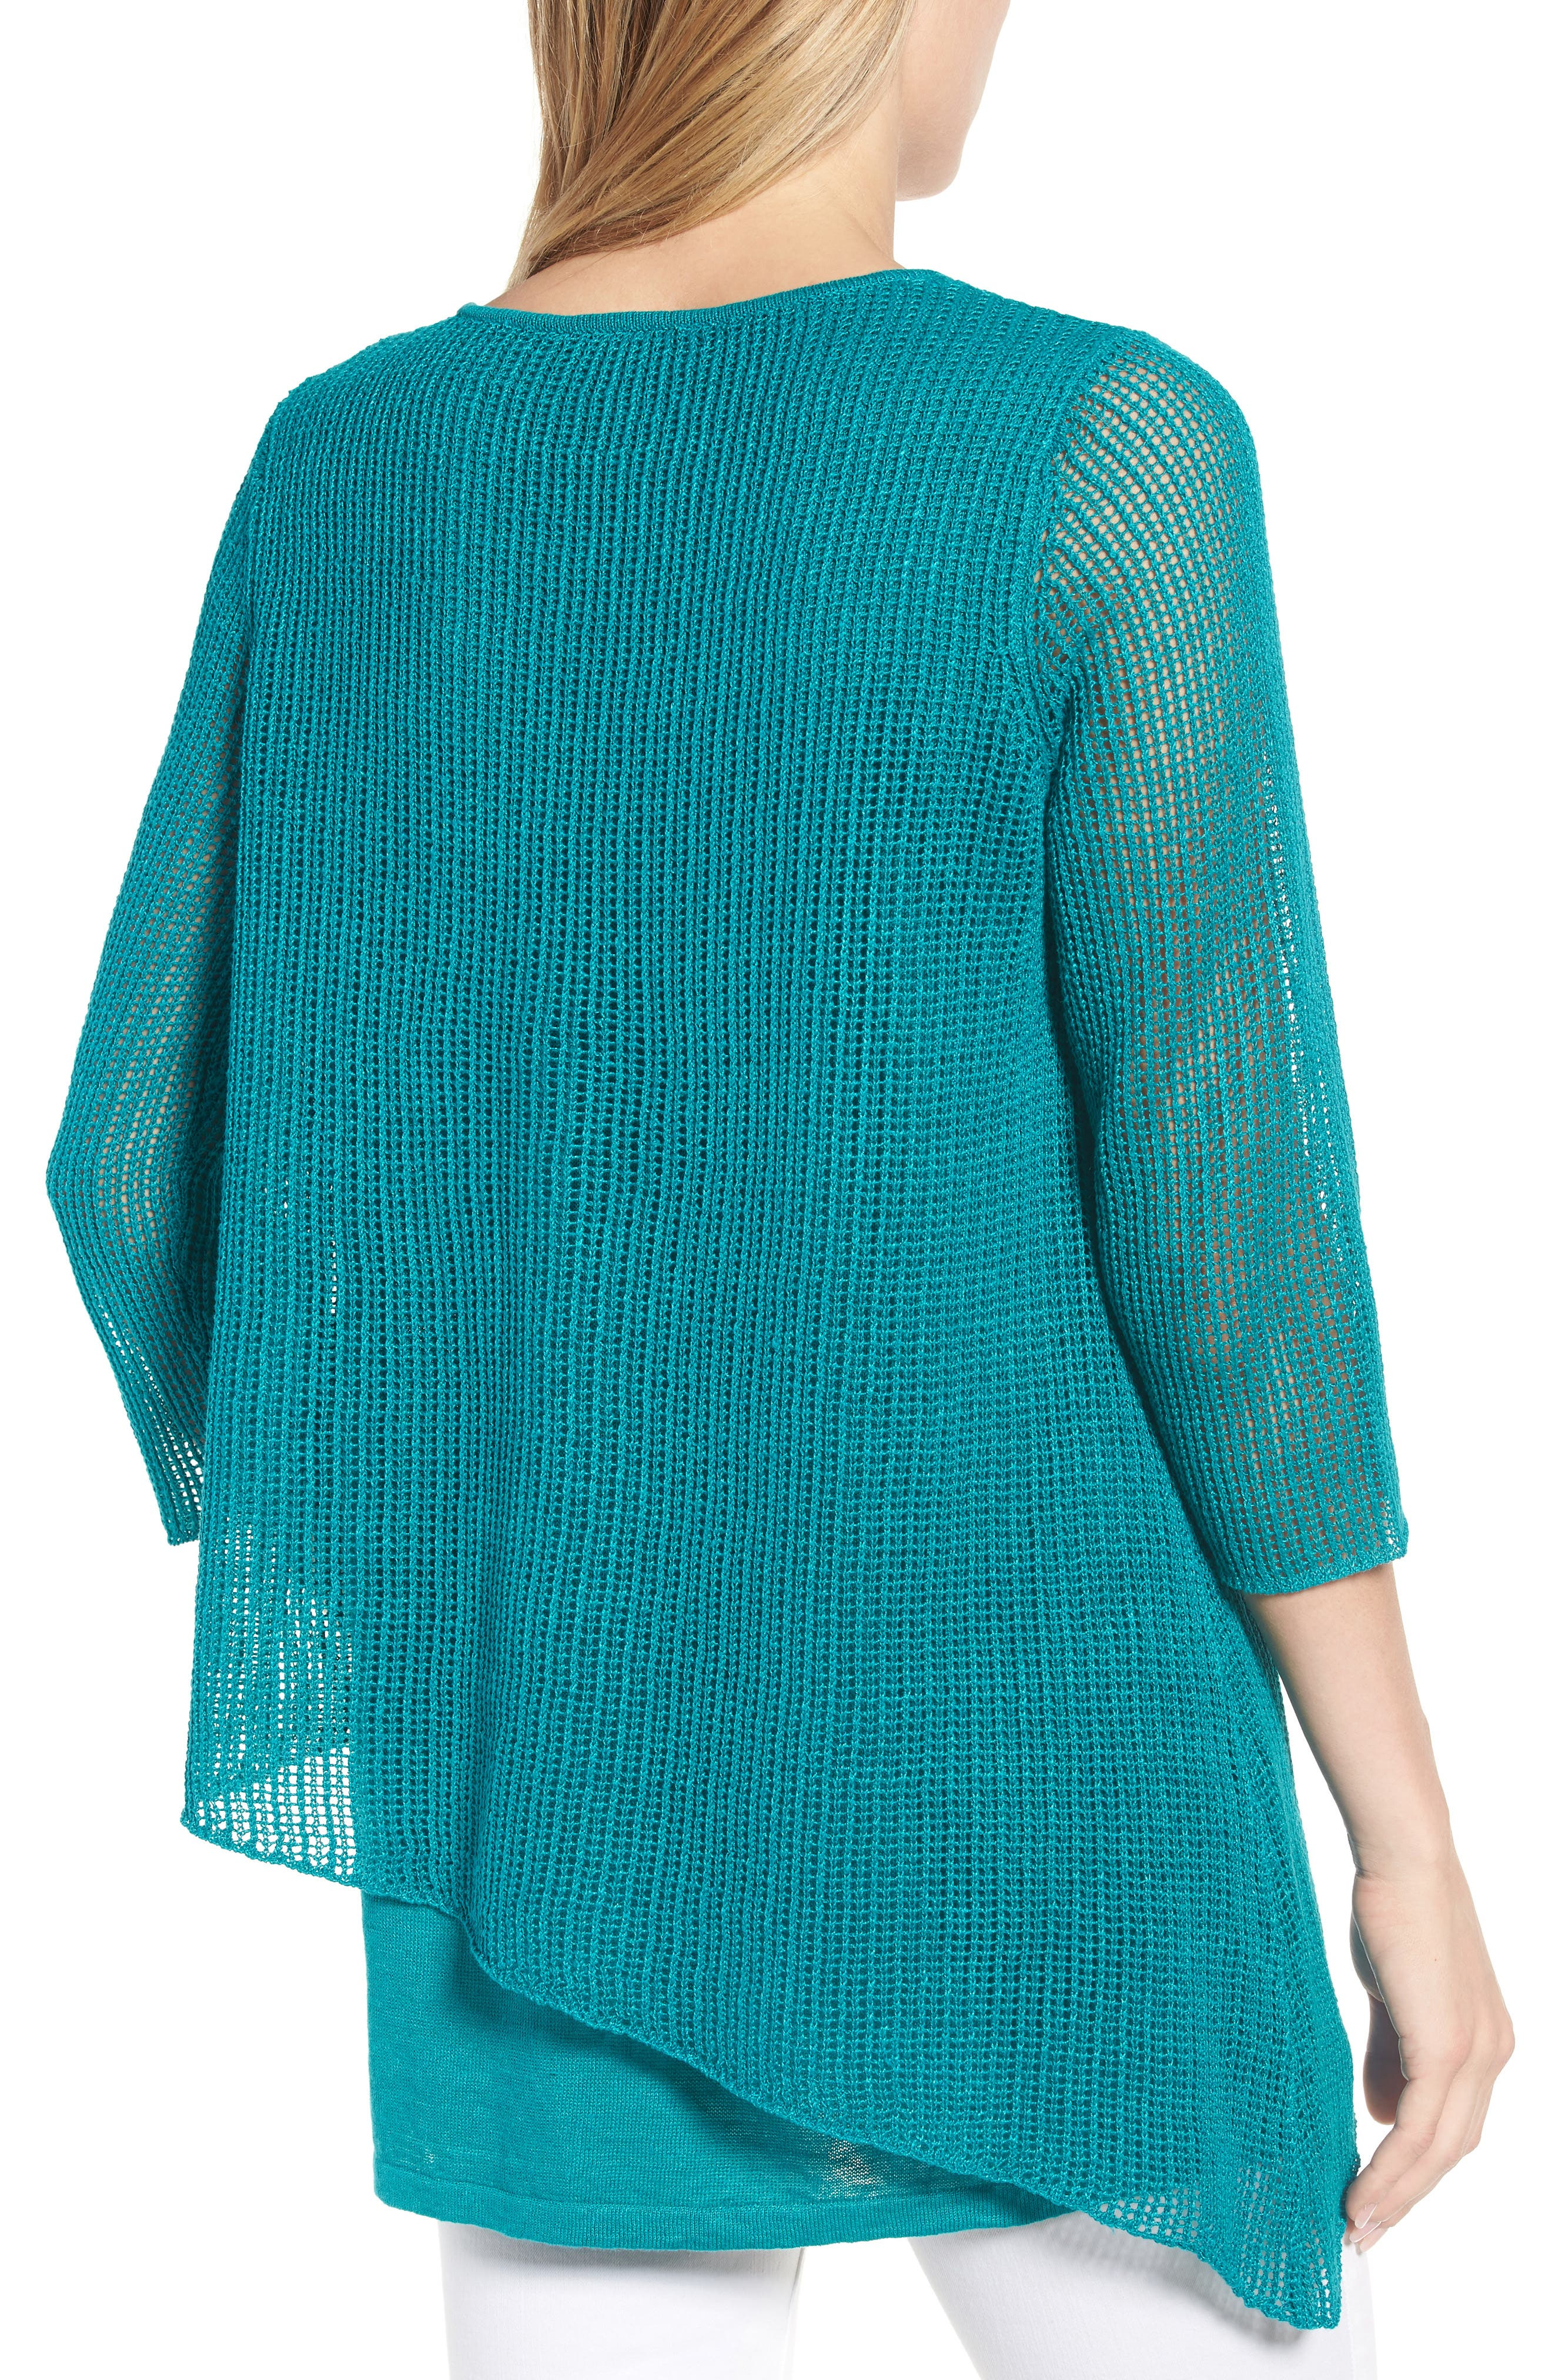 Organic Linen Tunic Sweater,                             Alternate thumbnail 2, color,                             Turquoise